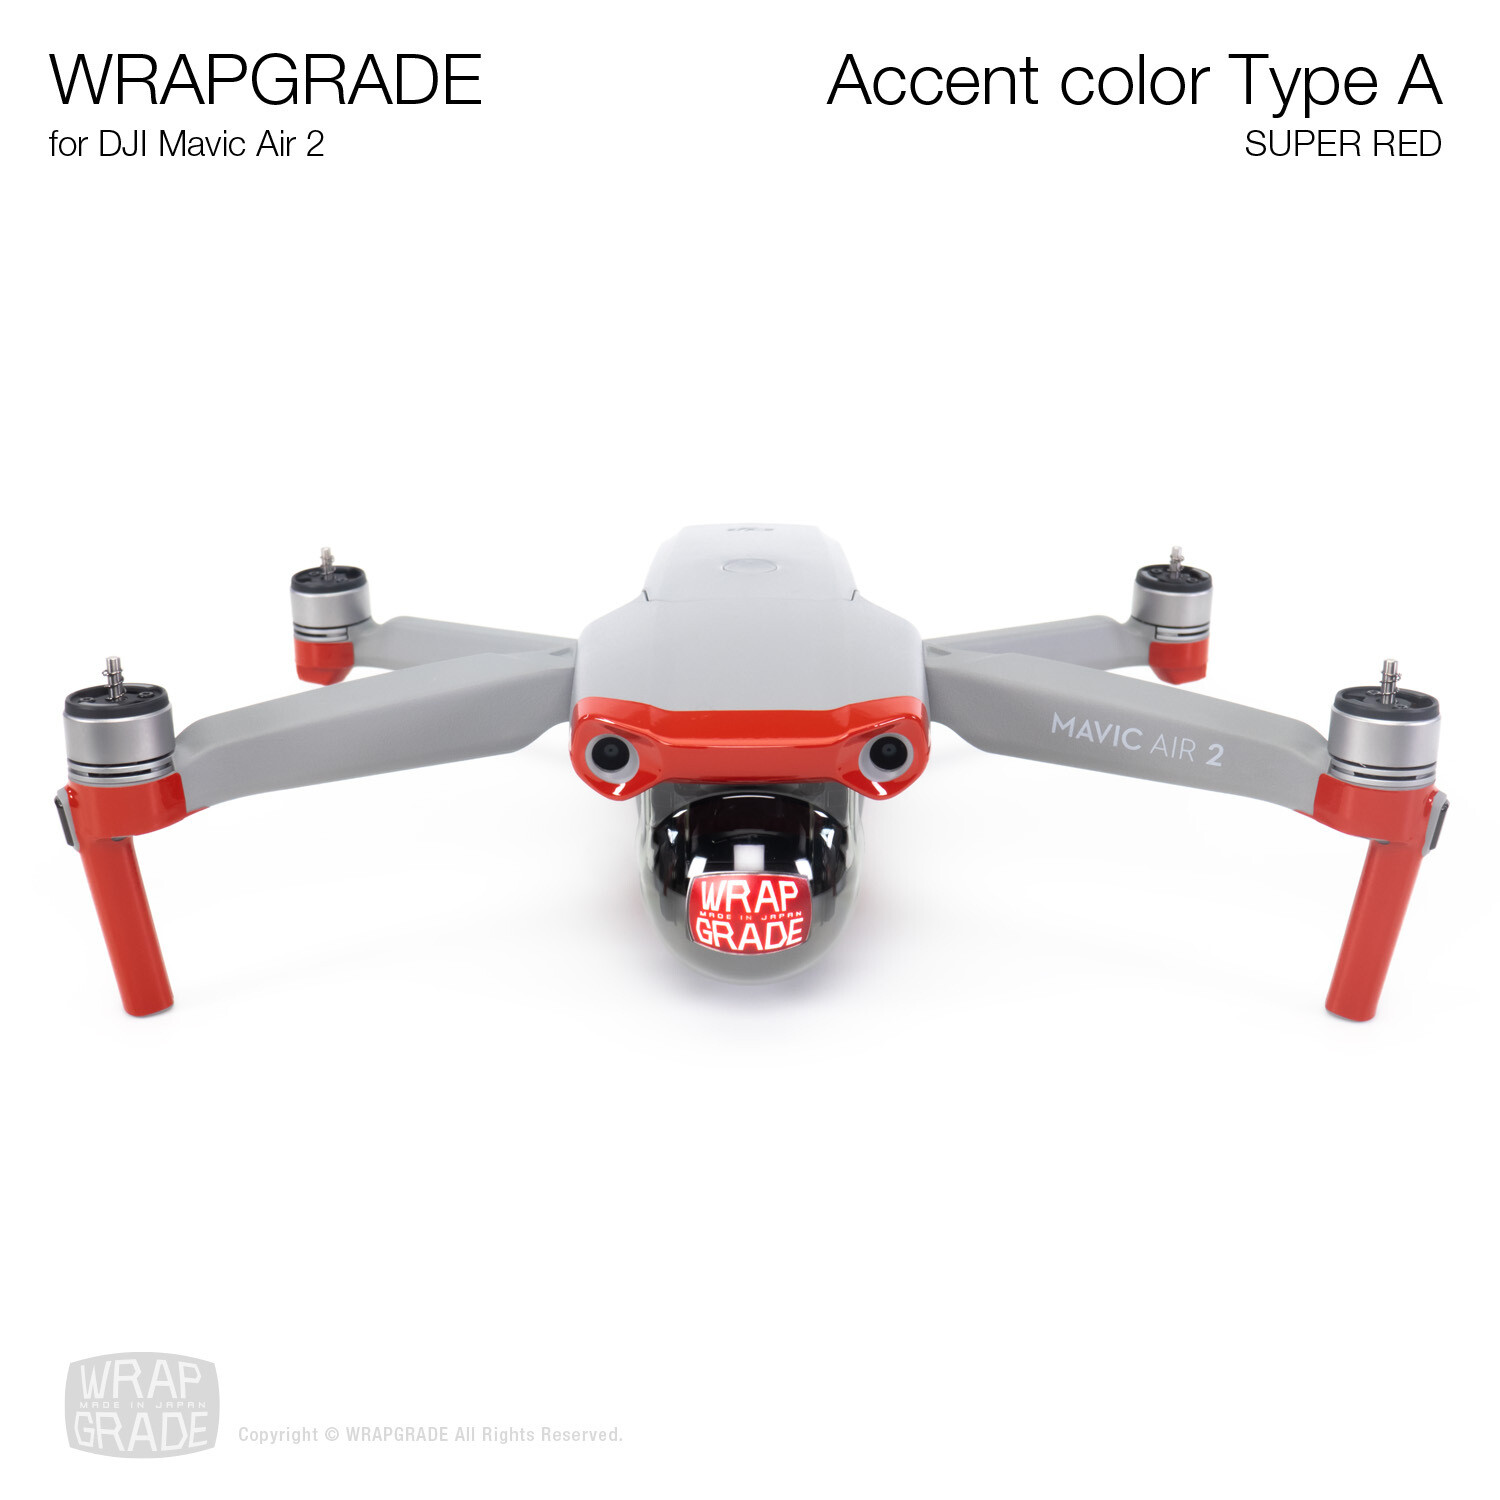 Wrapgrade for DJI Mavic Air 2 | Accent Color A (SUPER RED)